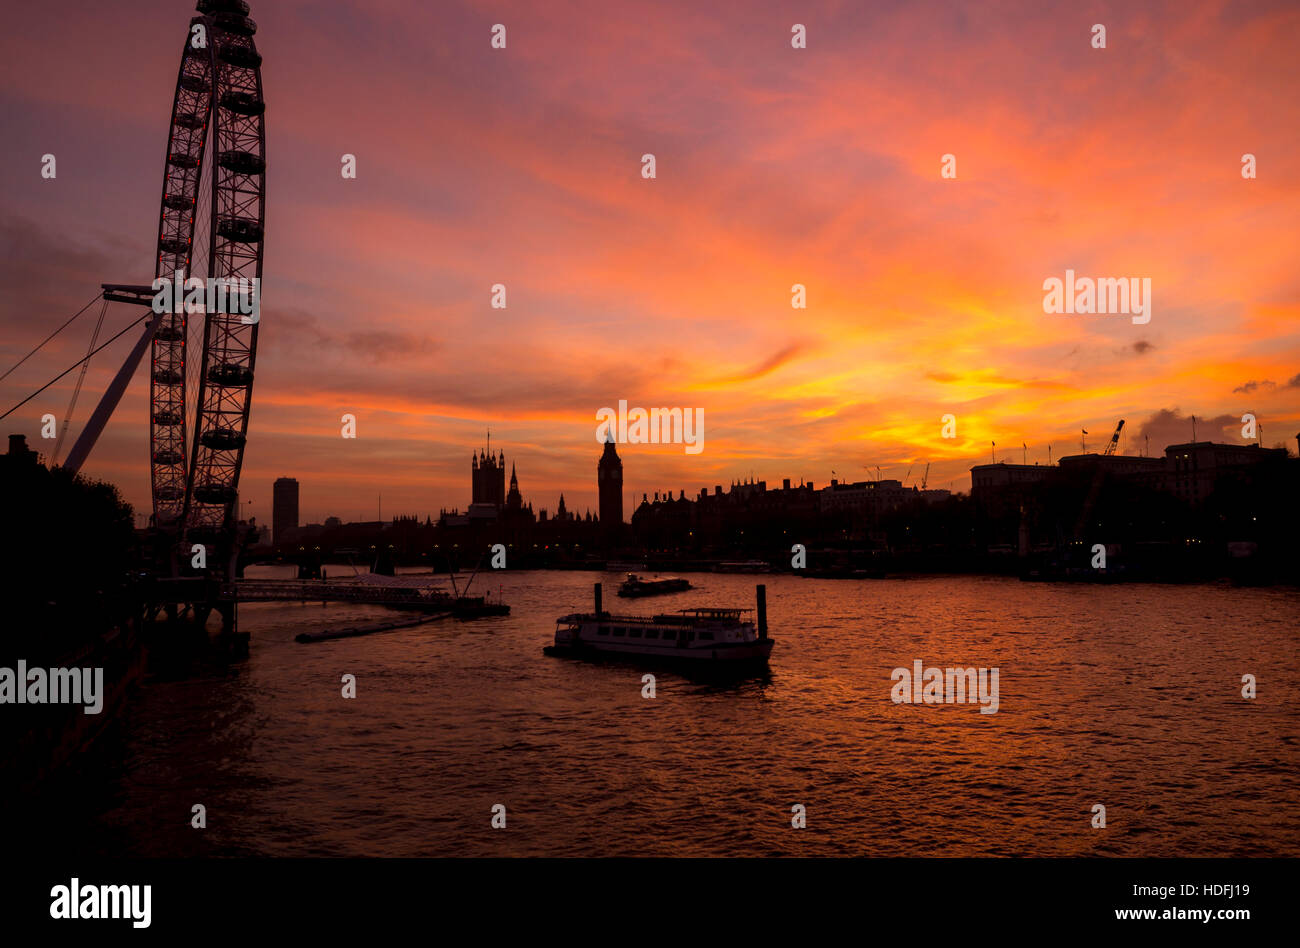 Beautiful view of London Skyline with London Eye and Westminster along Thames River - Stock Image